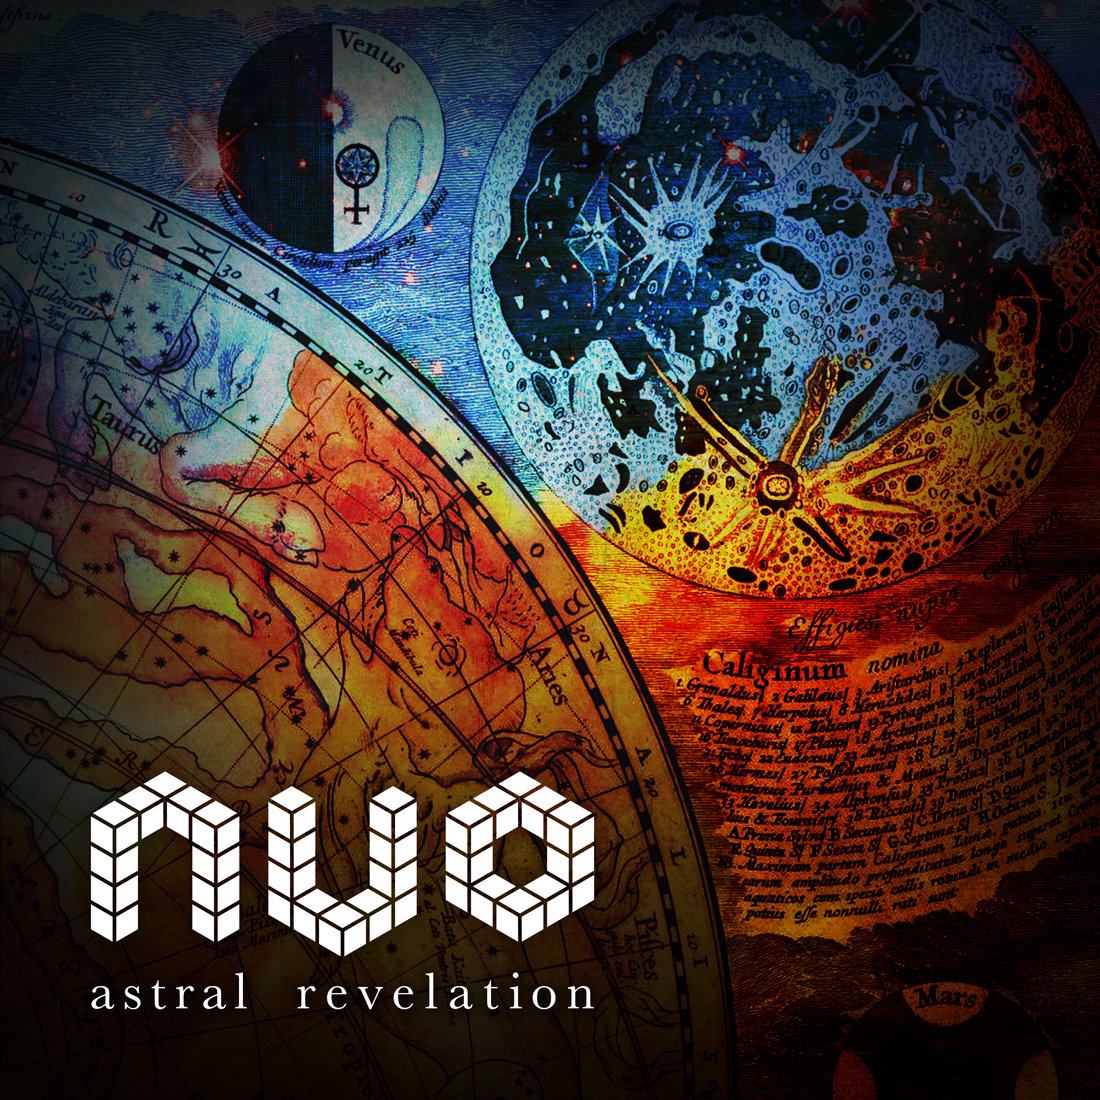 NVO - Astral Revelation (Anoctave Remix) @ 'Astral Revelation' album (deep house, electro house)